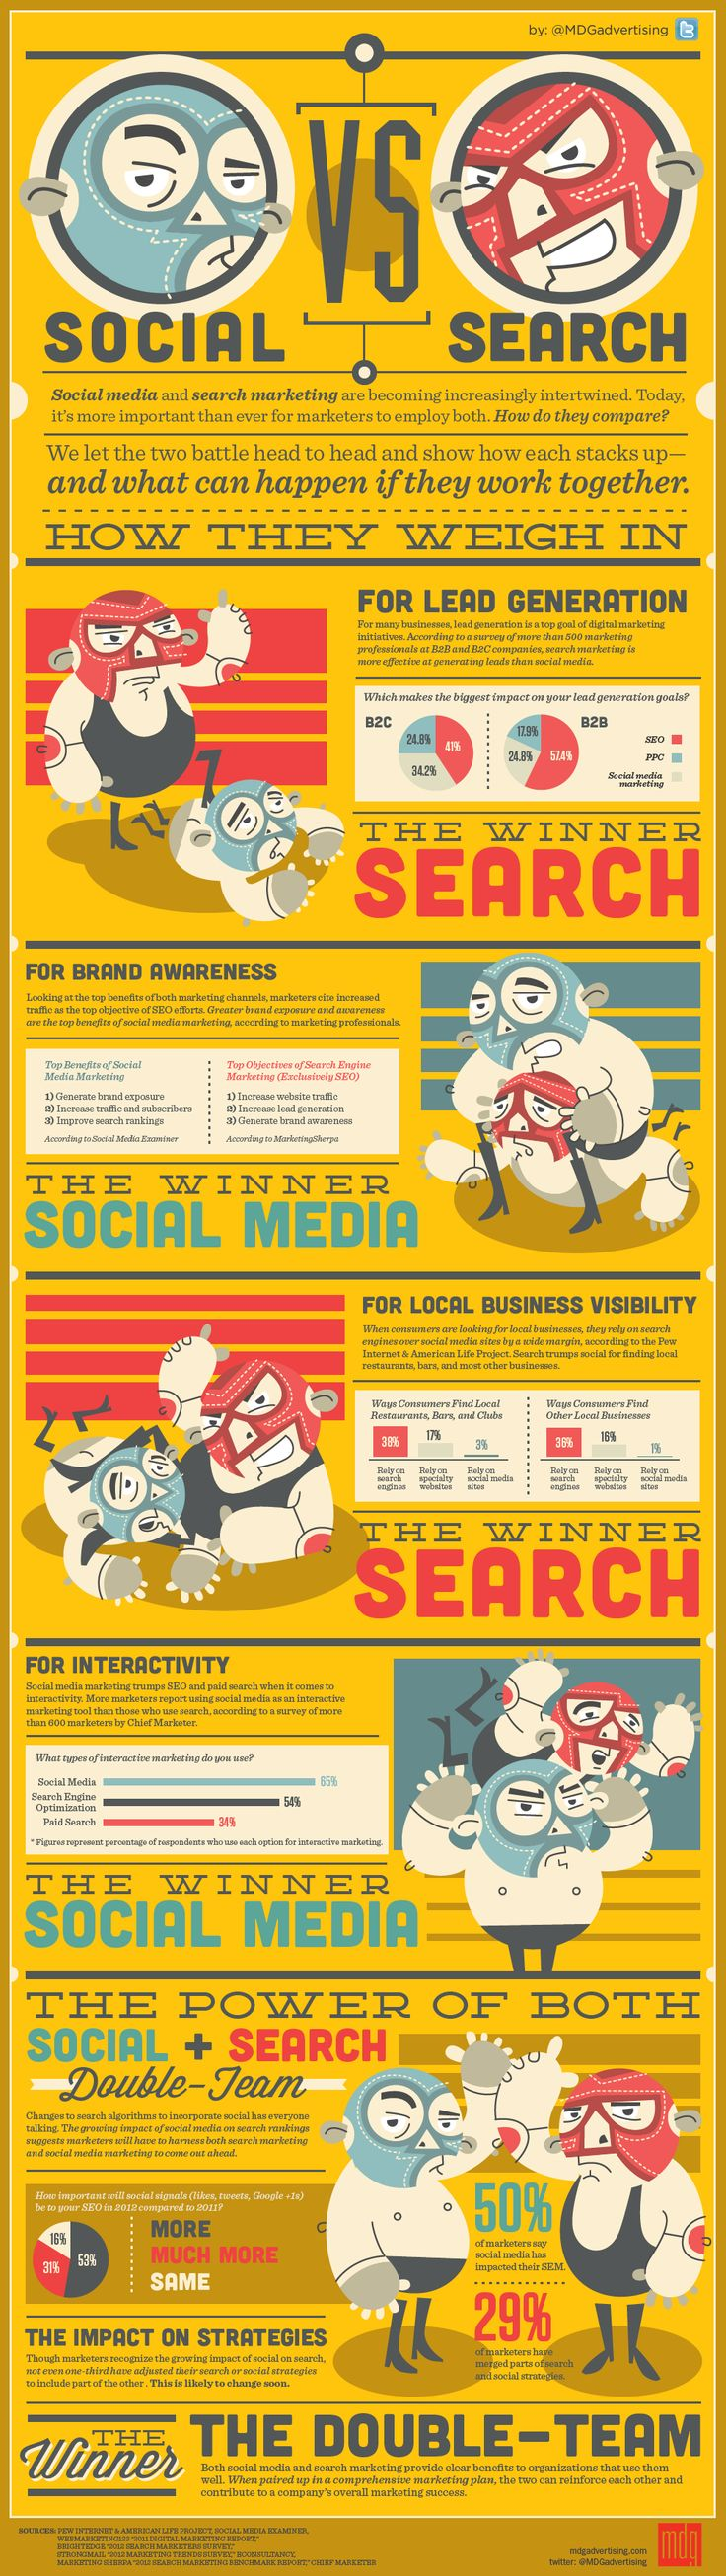 Social vs. Search infographic